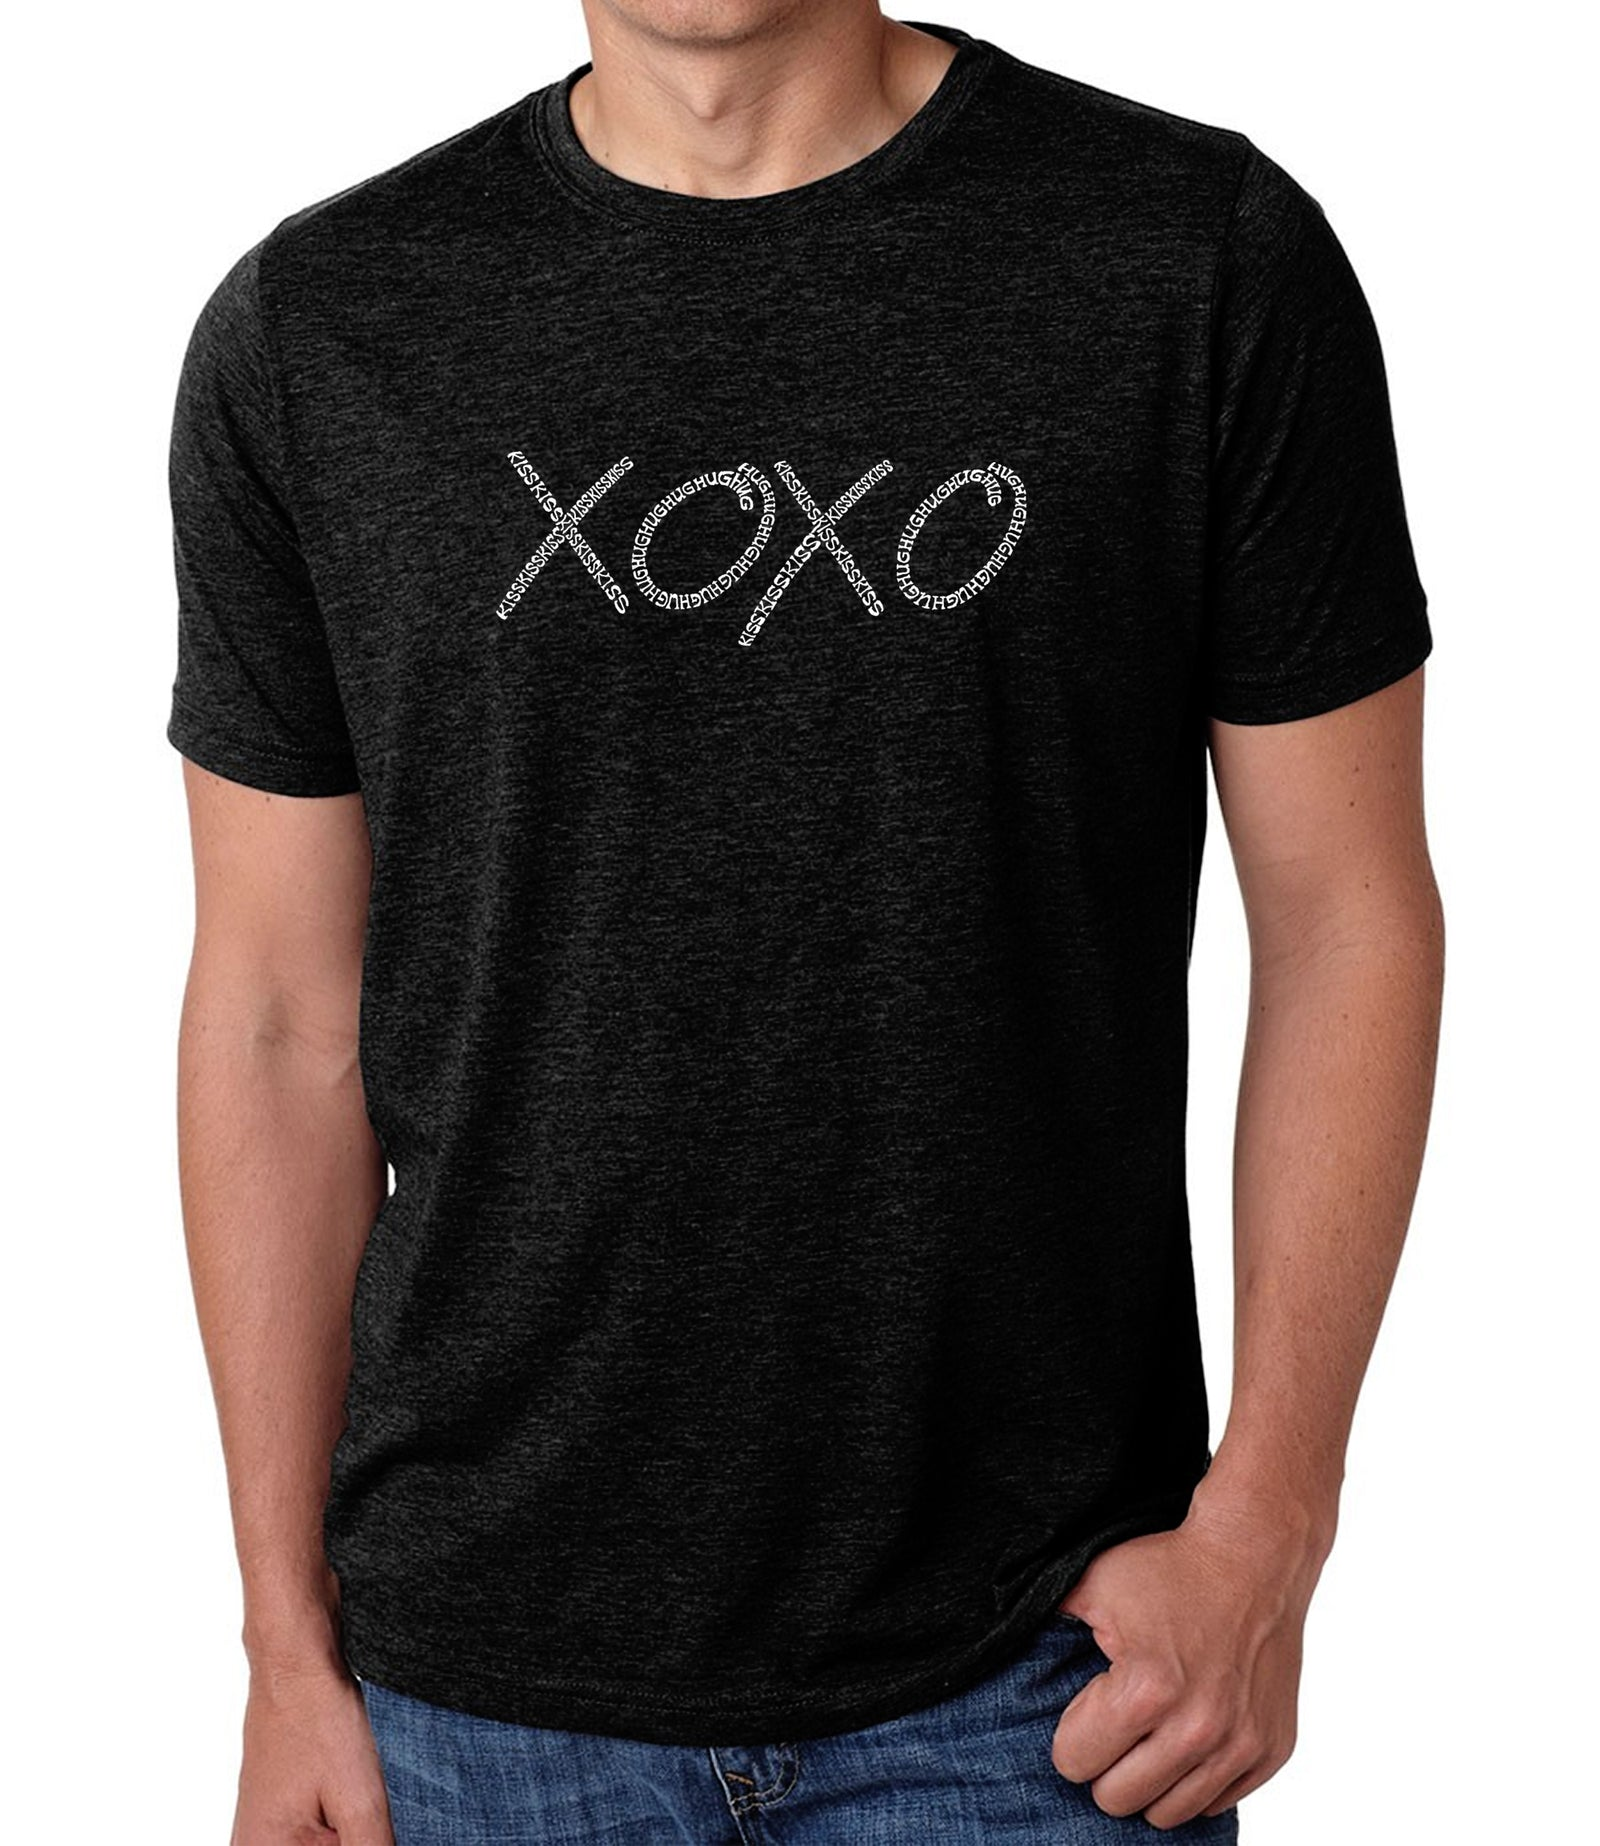 Men's Premium Blend Word Art T-shirt - XOXO